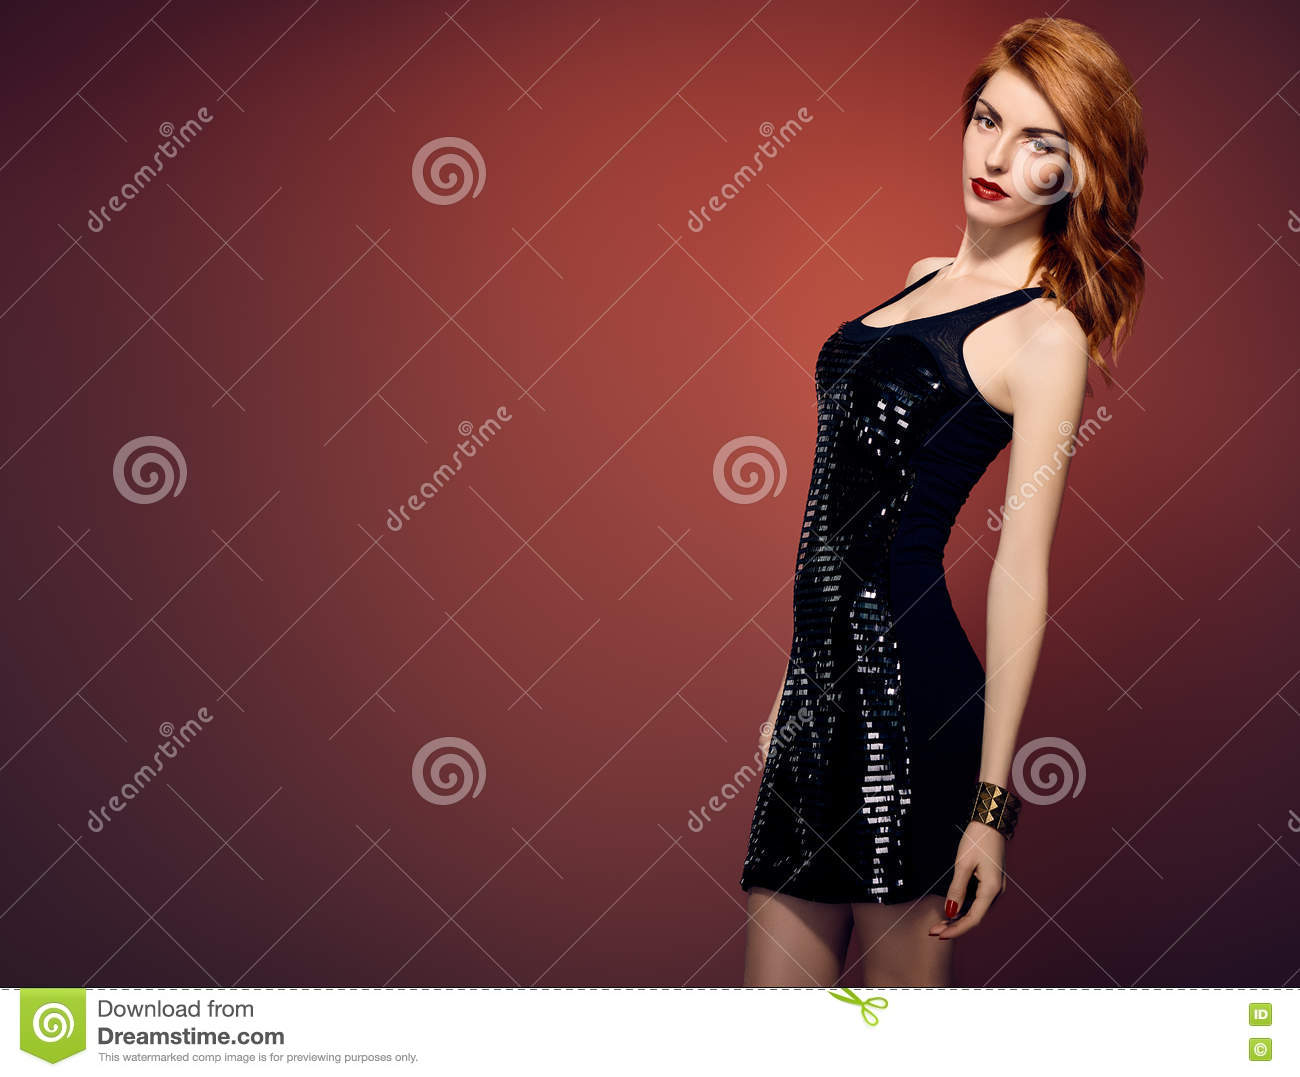 629425b7a9 Fashion Redhead Woman In Glamour Sequin Black Dress Stylish Luxury Party  Outfit Playful Model Girl Trendy